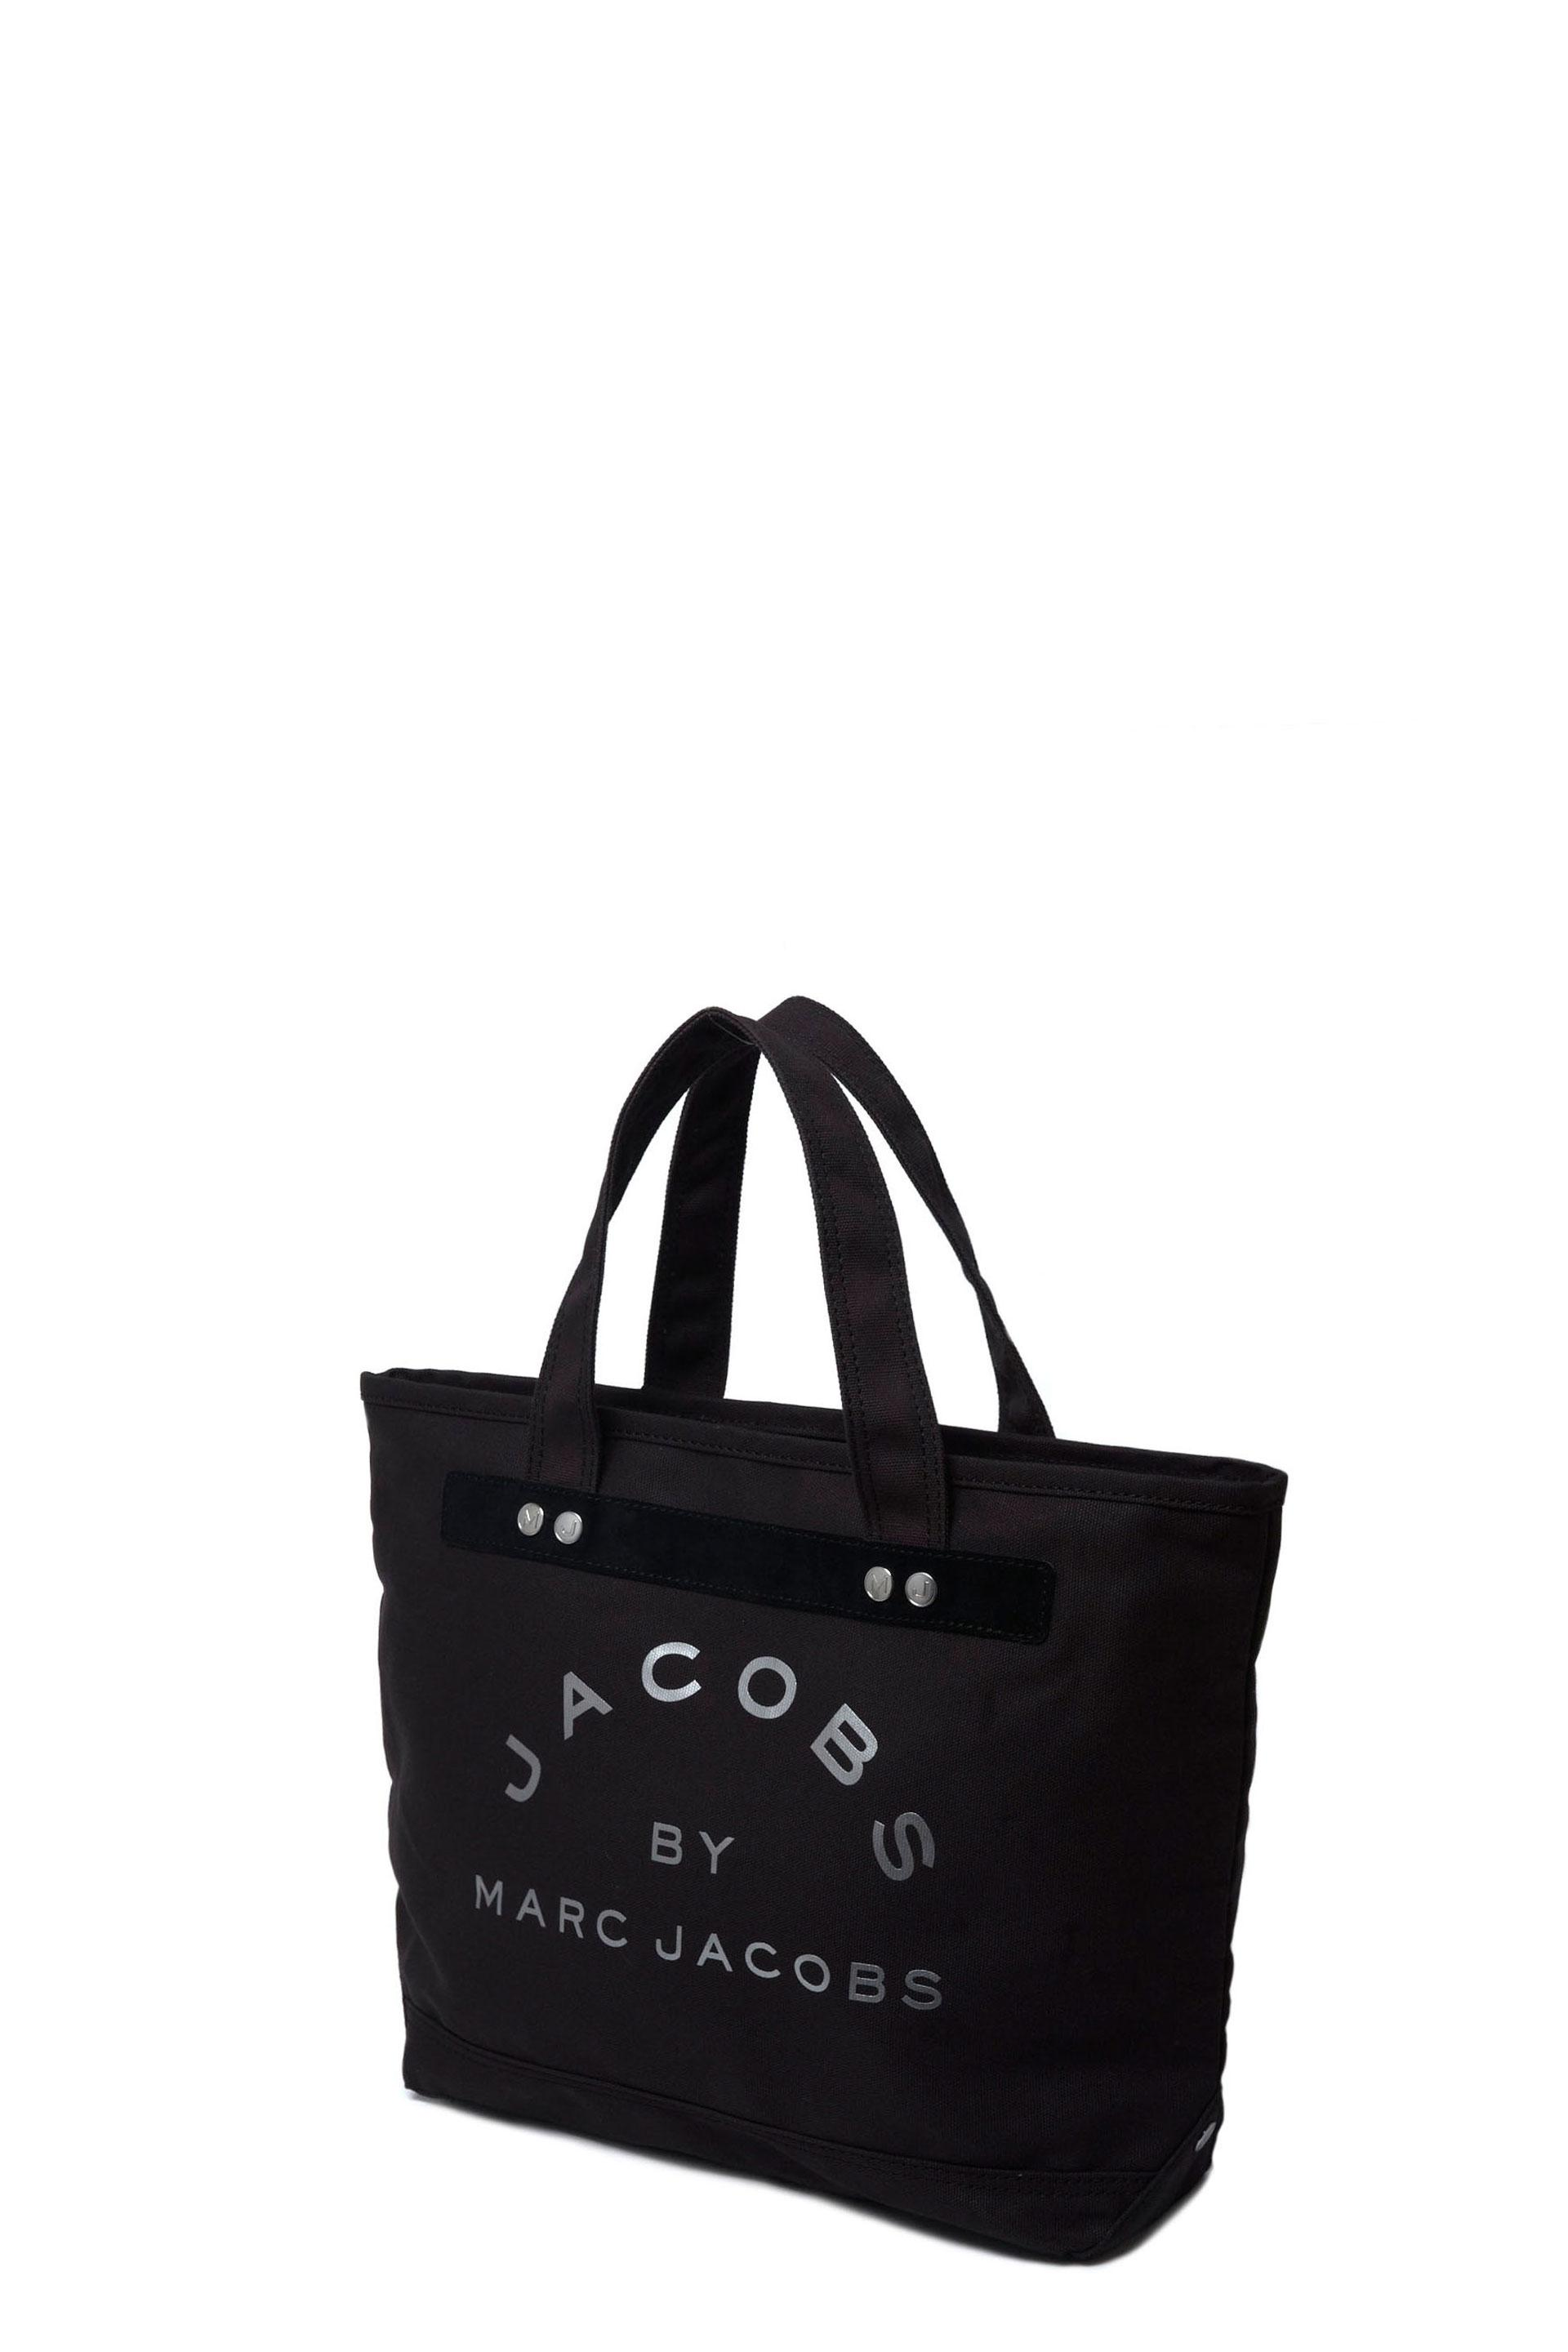 marc by marc jacobs canvas tote Jmu99pi5